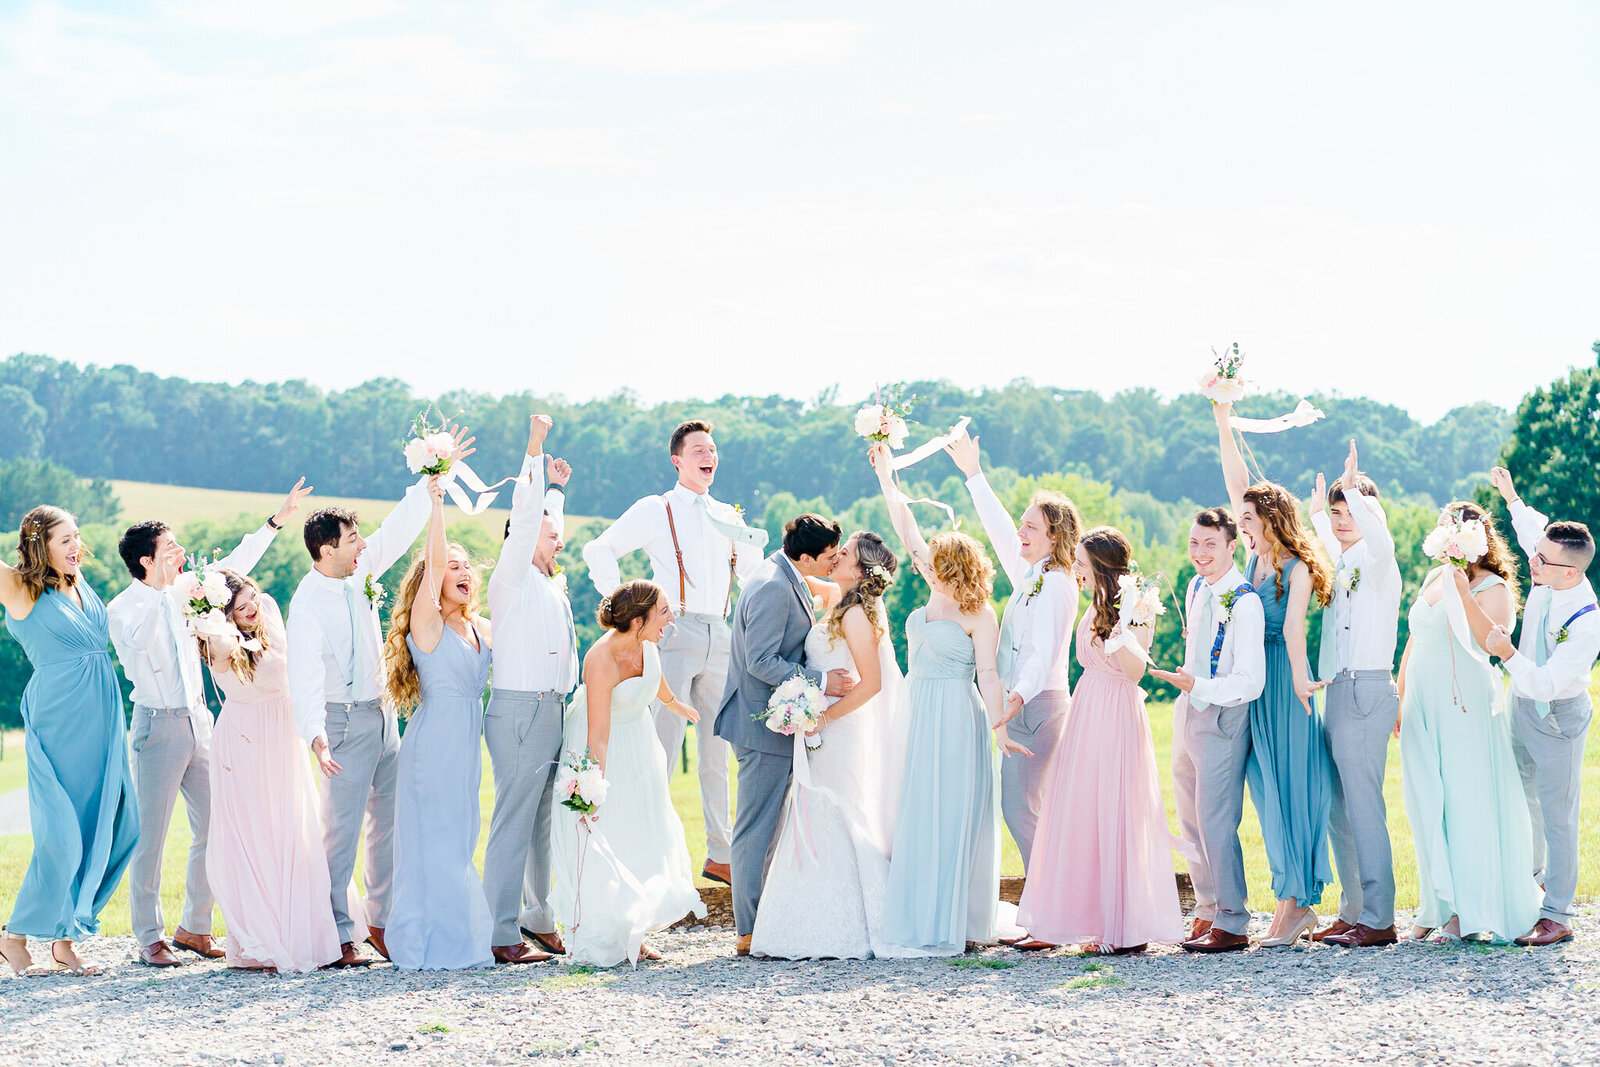 Bridal party celebrating bride and groom in New England wedding